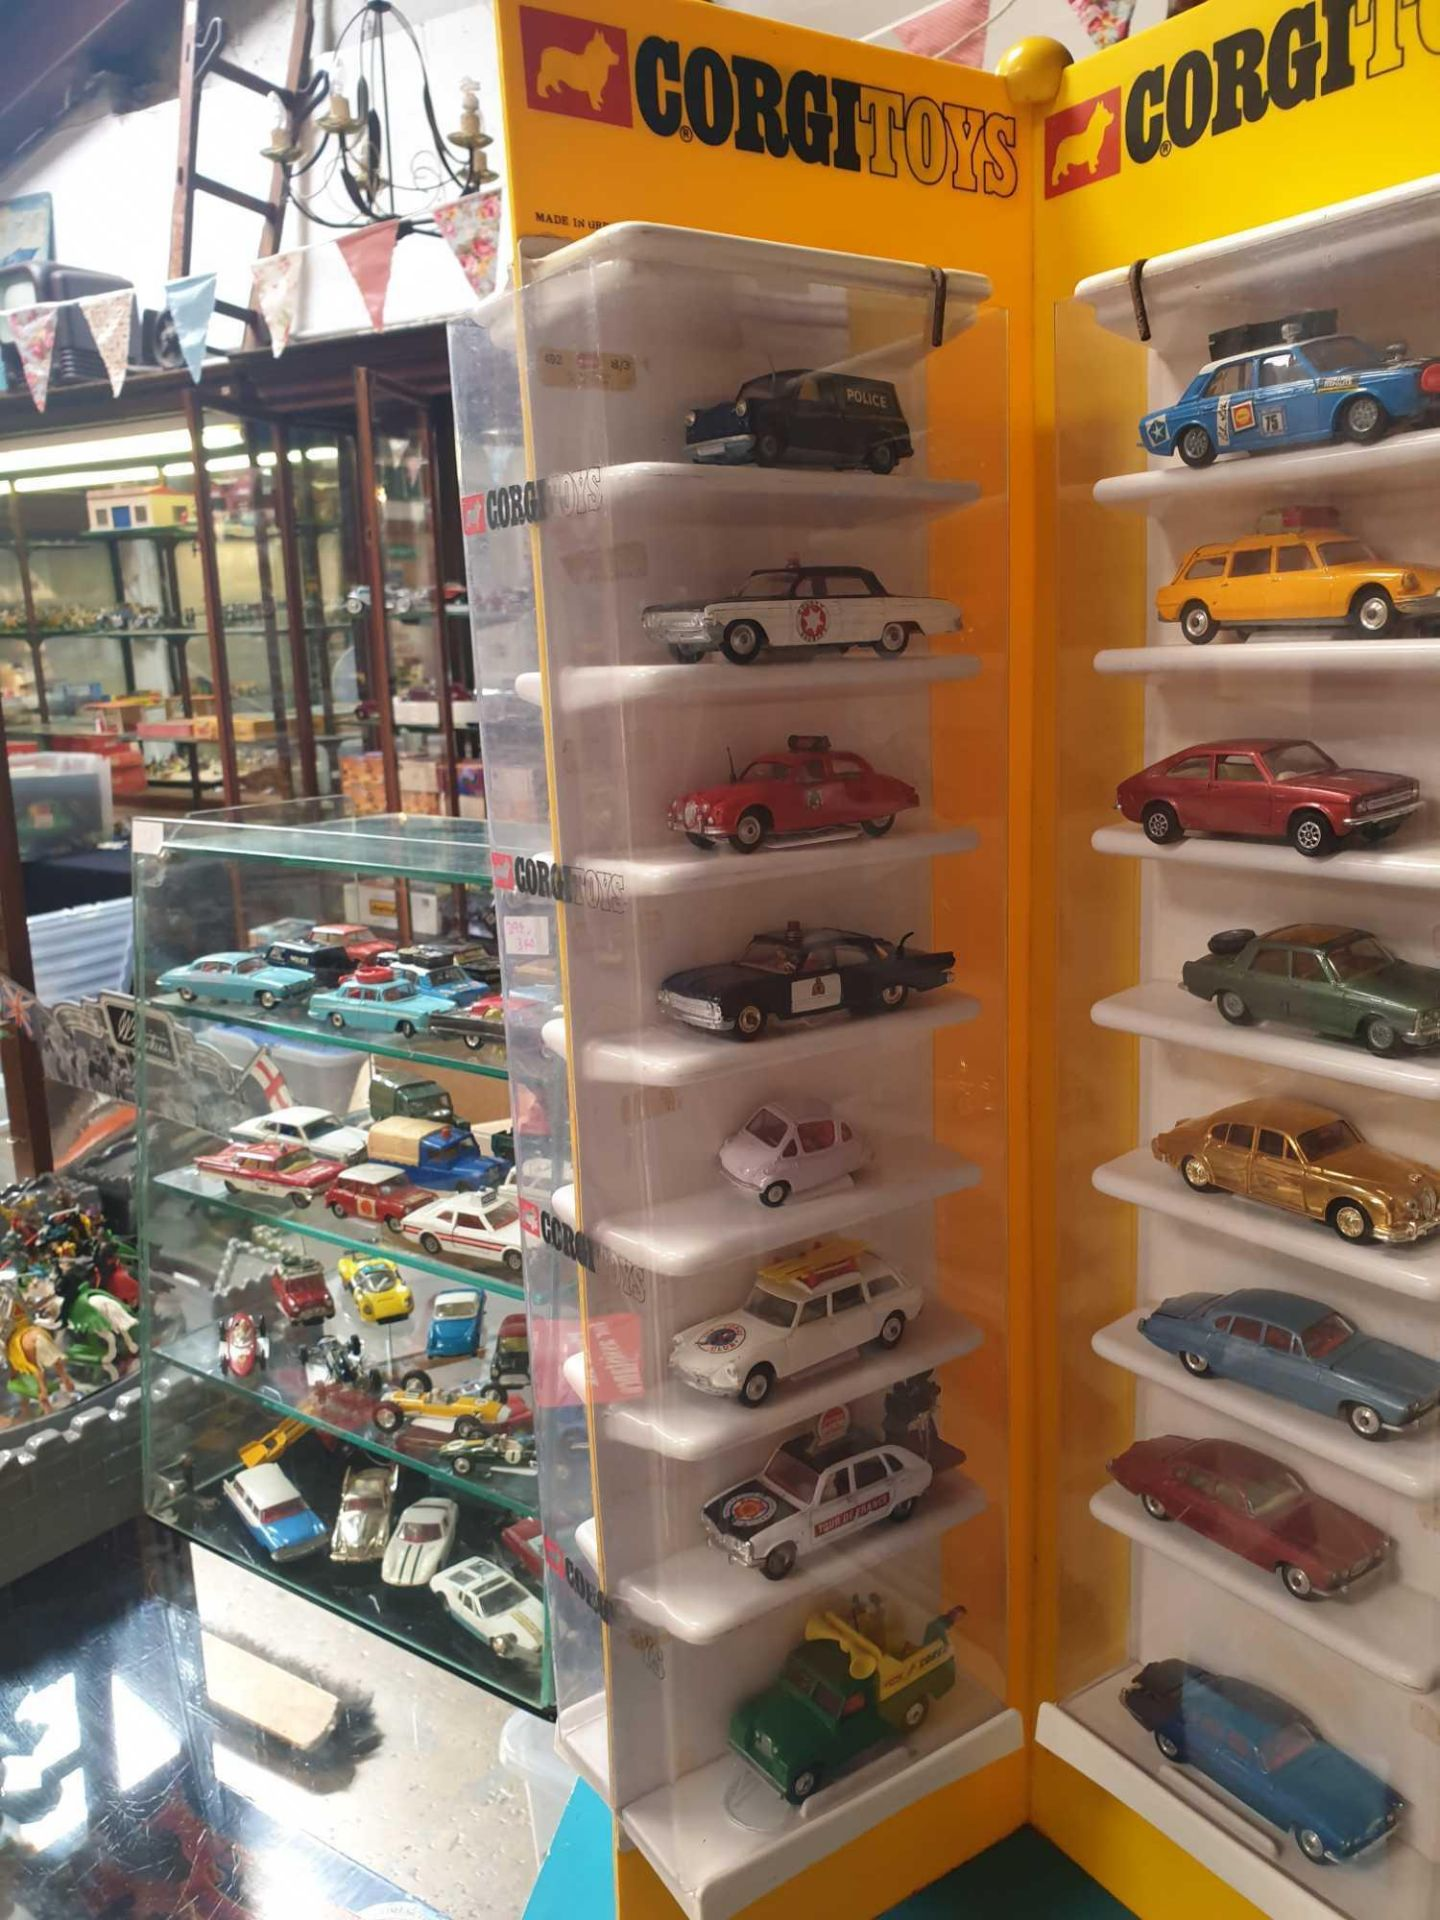 Lotto 1220 - **WOW** Corgi Diecast Display Stand With 64 Individual Diecast Car Models -  356 VW US Personell